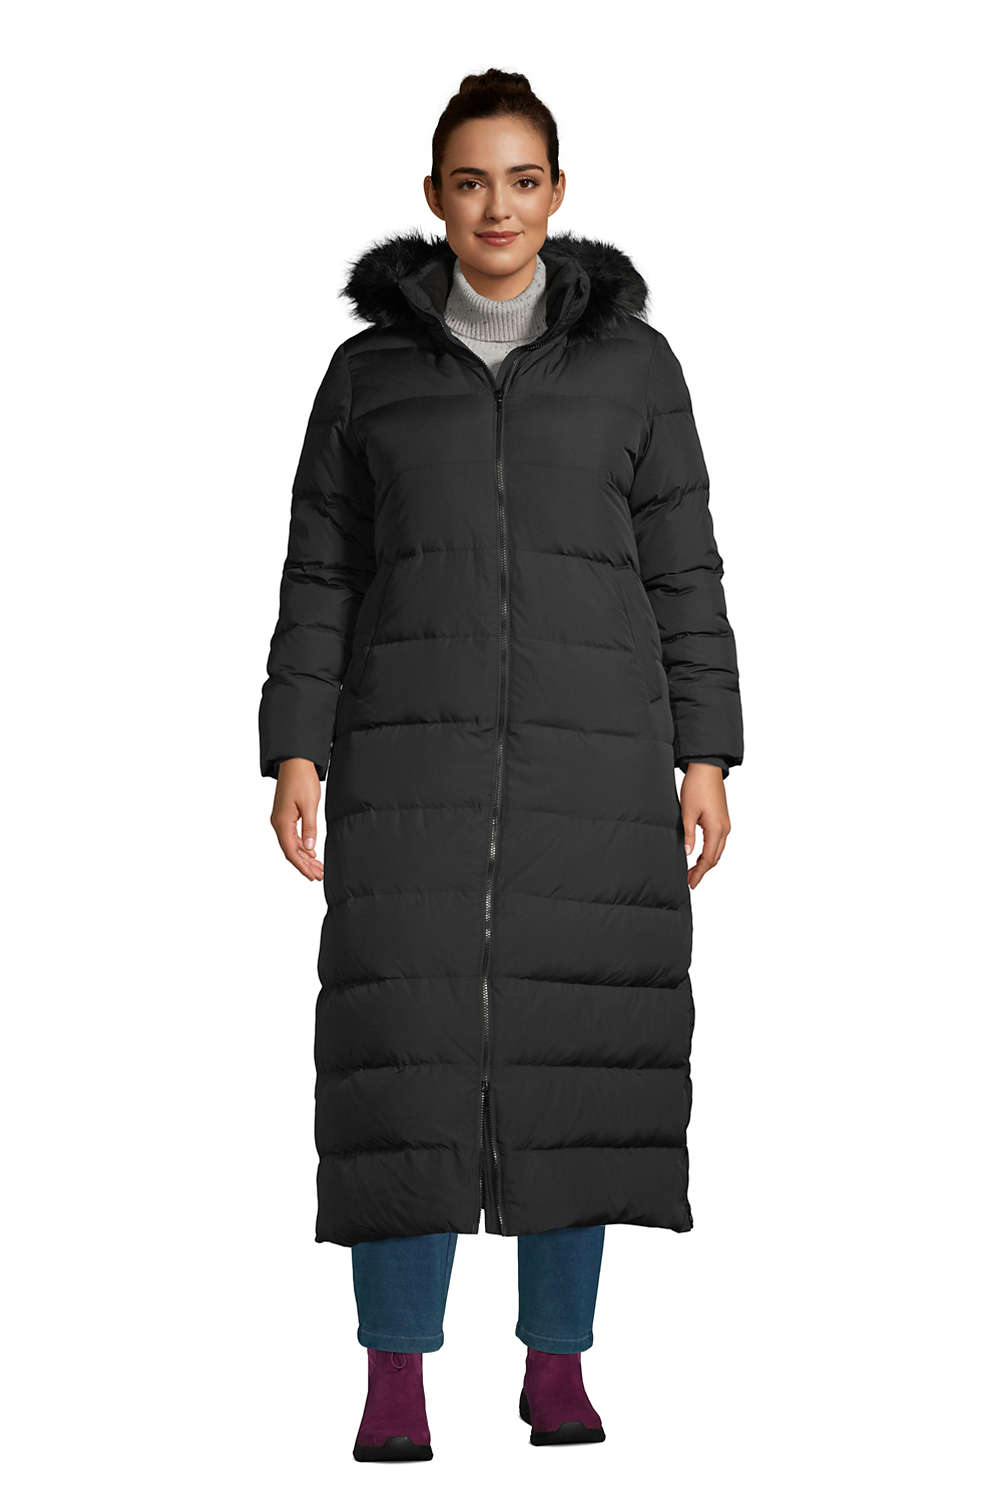 good service stylish design shop for luxury Women's Plus Size Winter Long Down Coat with Faux Fur Hood